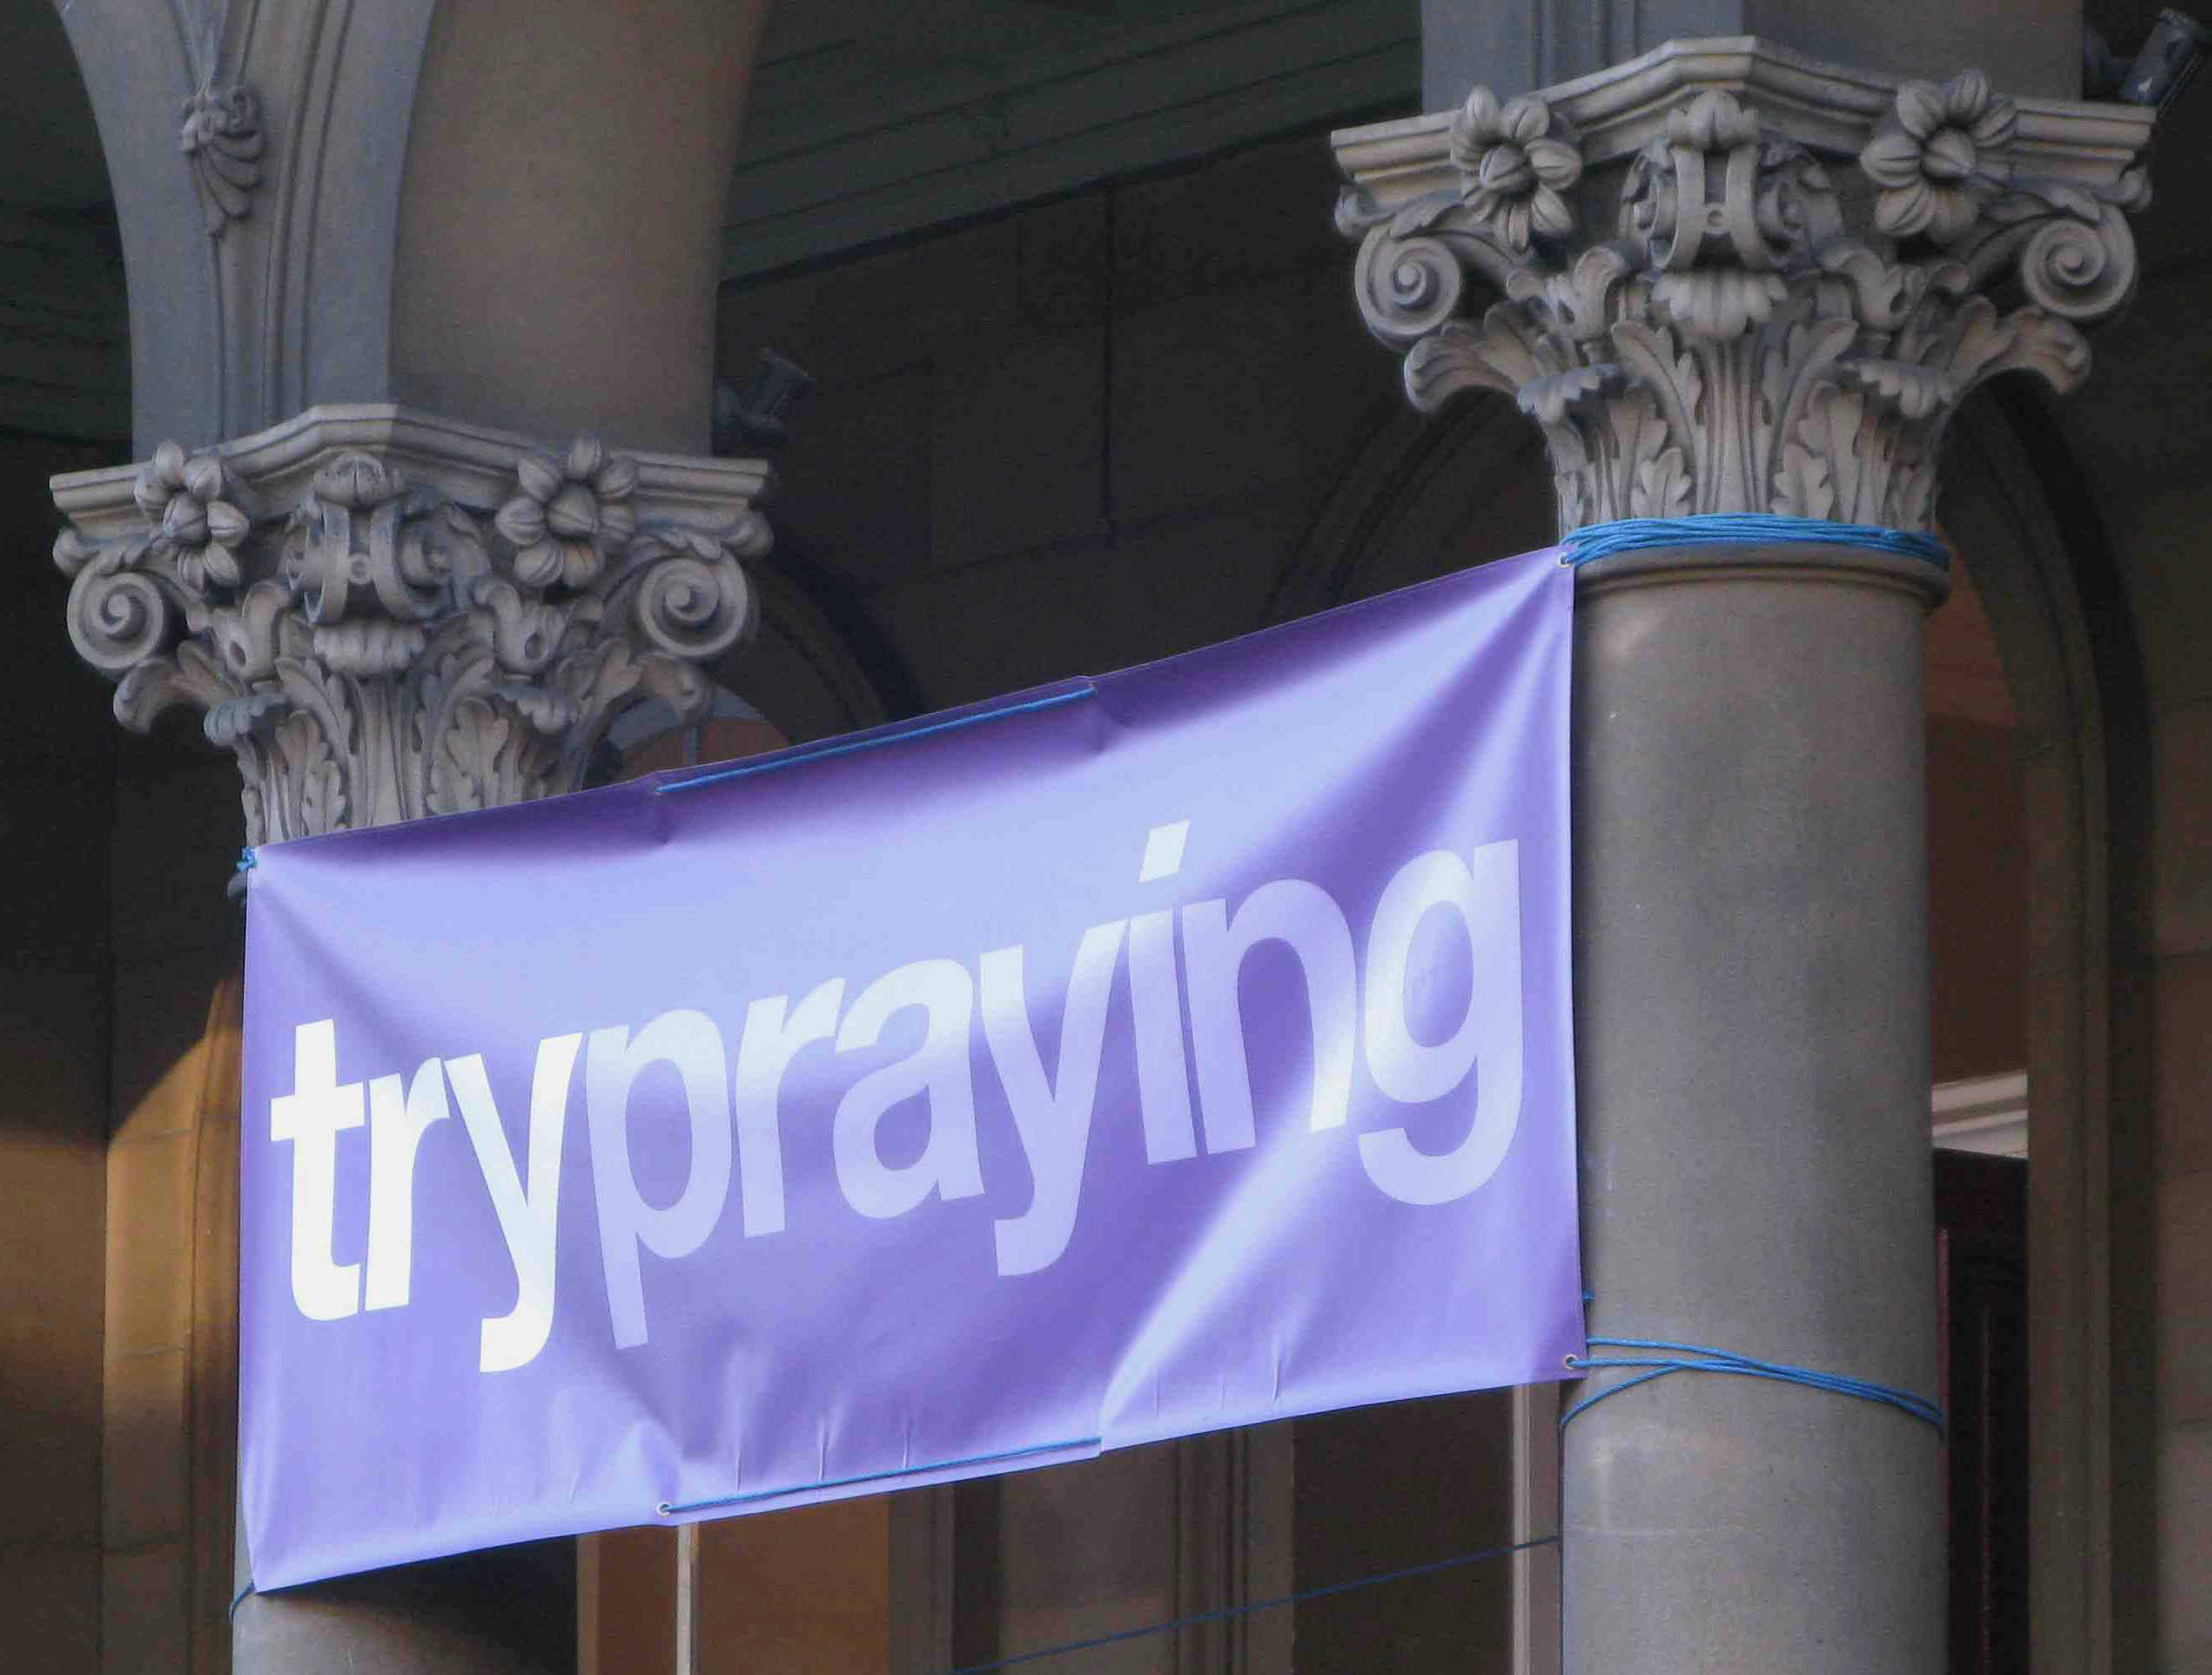 try-praying